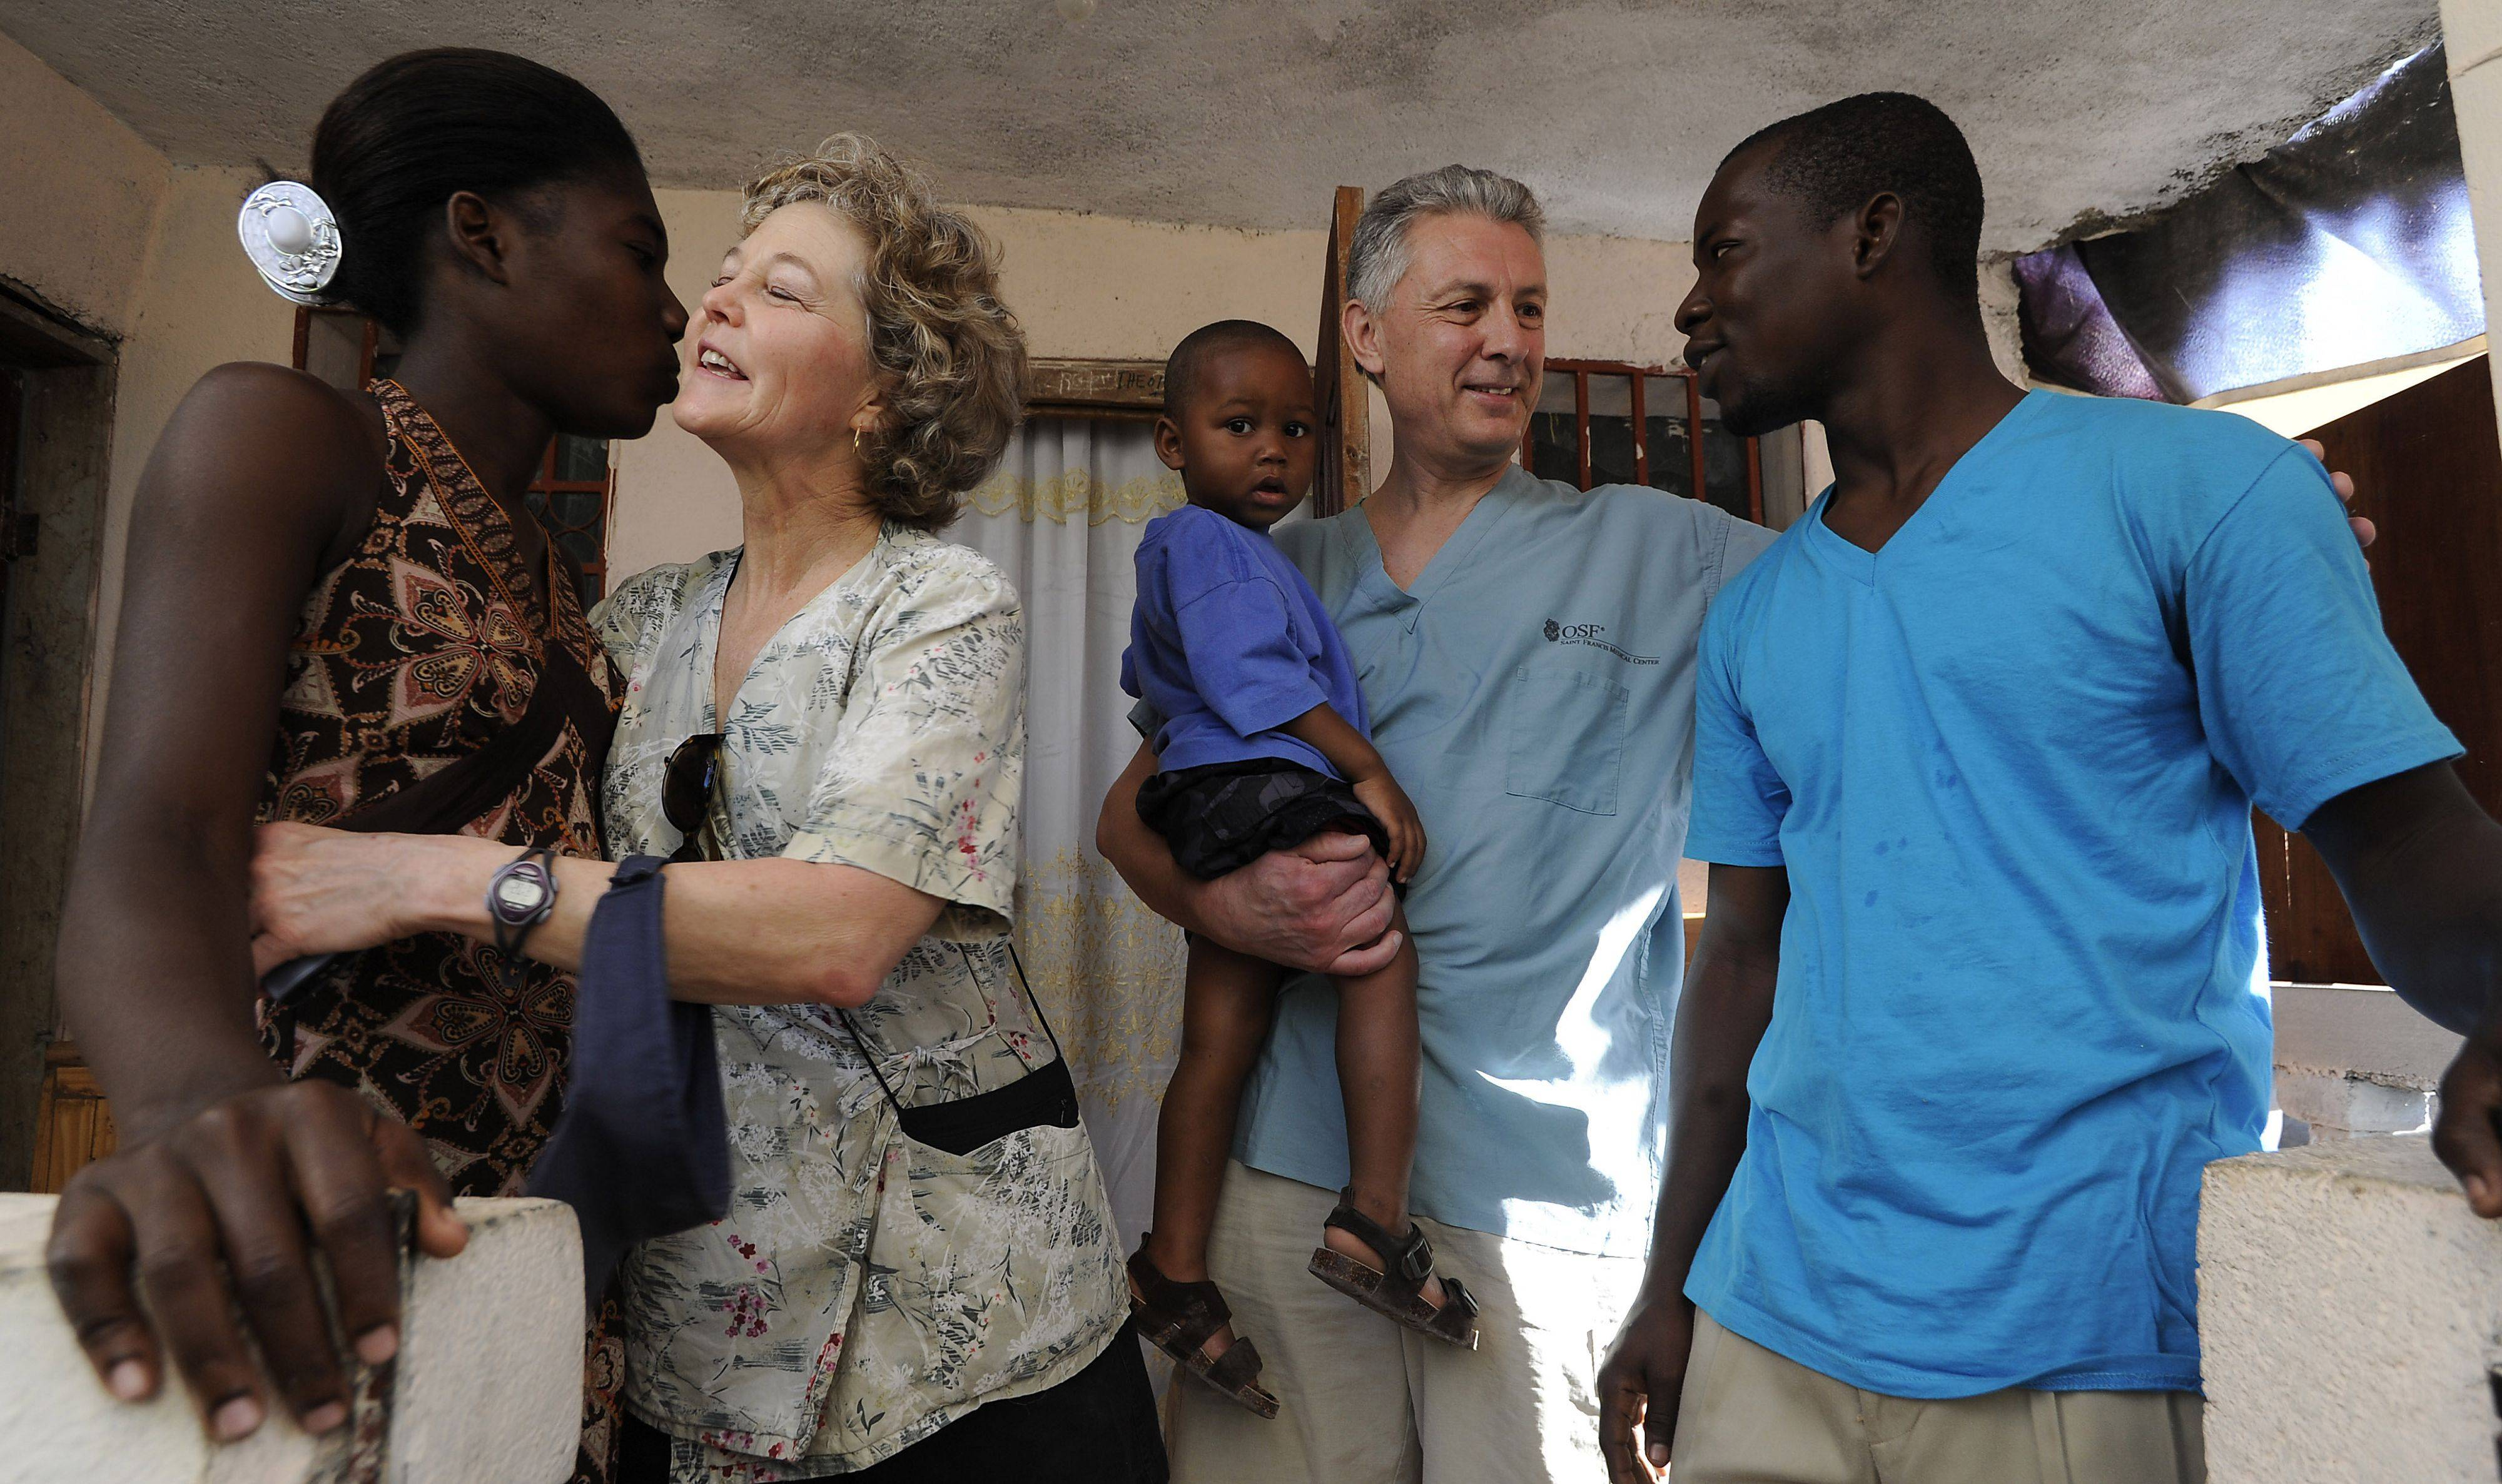 One big happy family in Jacmel, Haiti, with Loucite Charles, Trudy Vogel, Godson, Paul Vogel and Gesnel Augustine saying goodbye for another year, until the Vogel comes back next year.